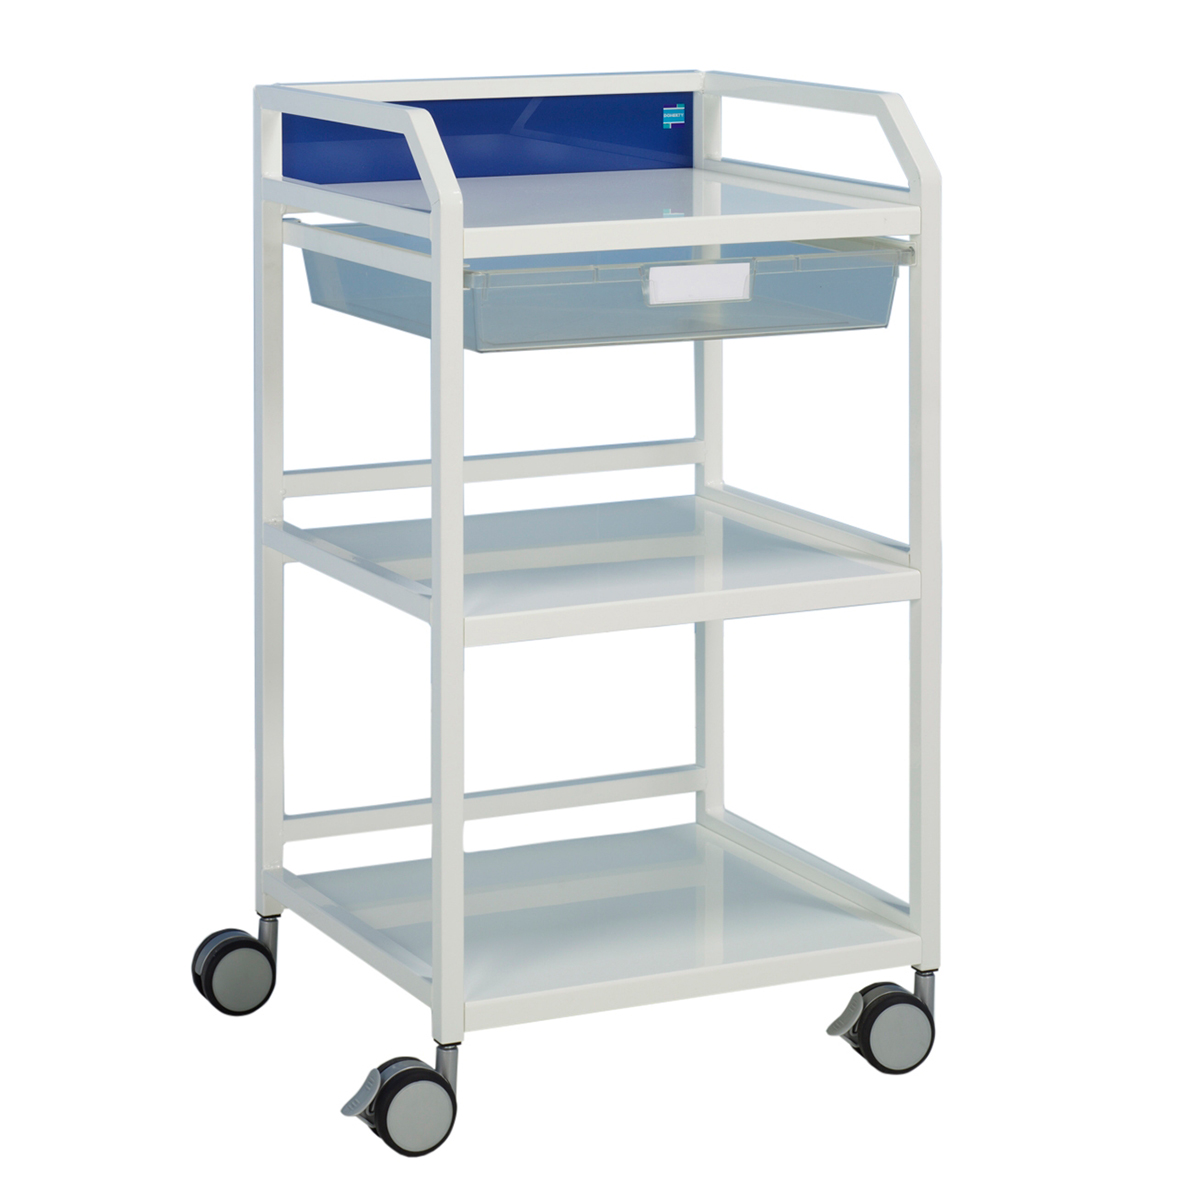 Executive Trolley with Shelves